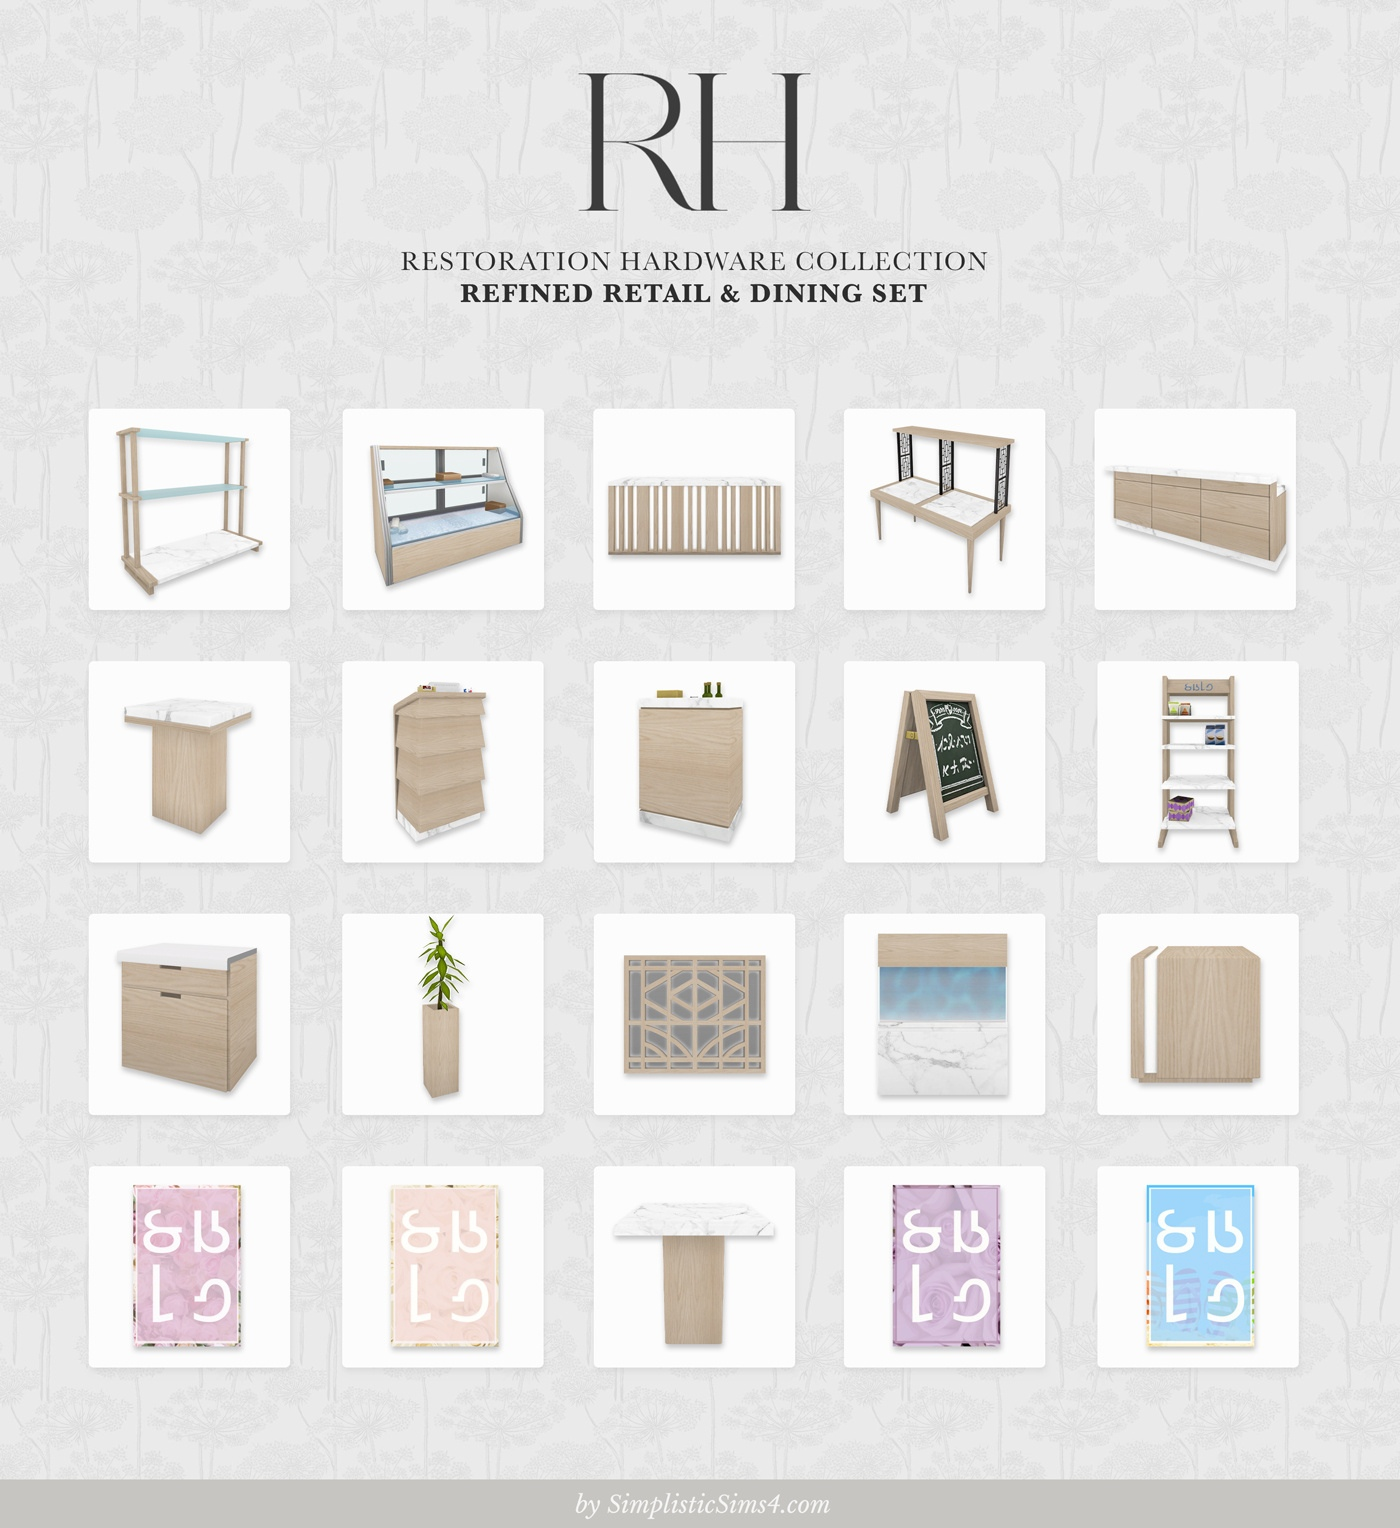 rh-refined-retail-and-dining_april by simplis